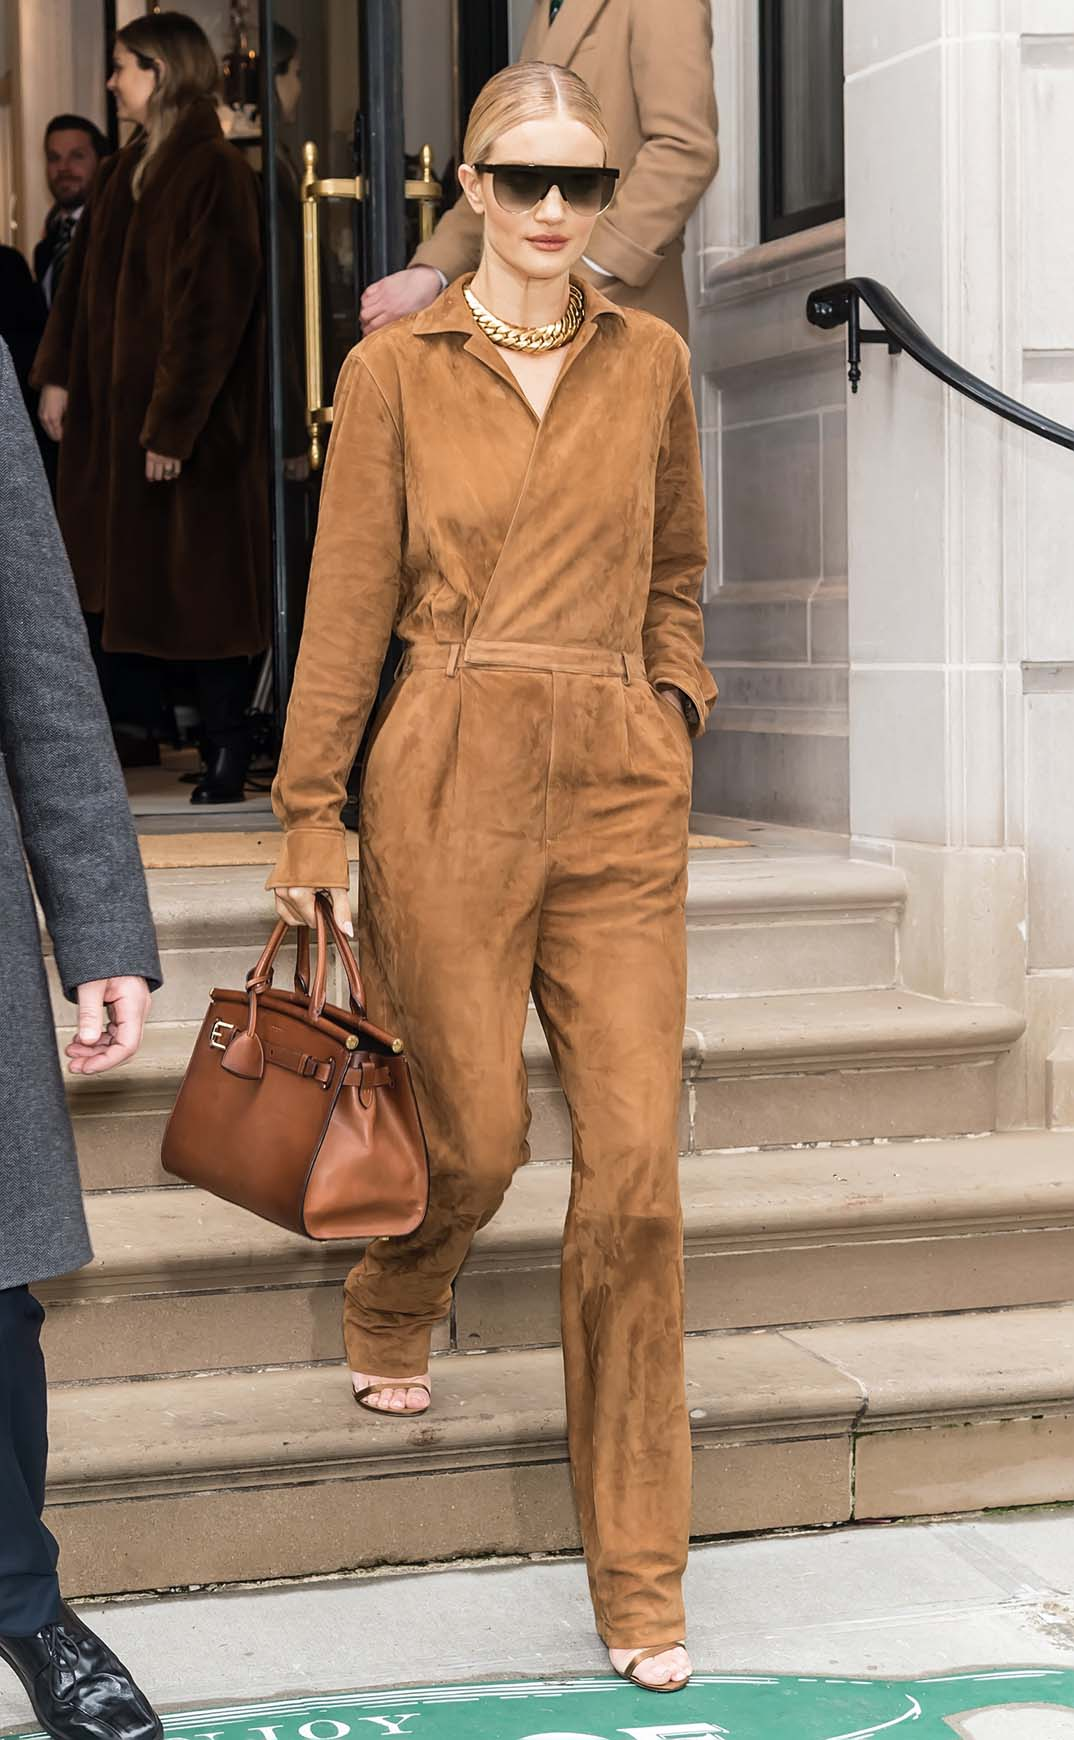 NEW YORK, NY - FEBRUARY 07:  Model, actress Rosie Huntington-Whiteley is seen leaving Ralph Lauren Spring/Summer 2019 fashion show during New York Fashion Week at Ralph's Coffee at Ralph Lauren Flagship store on 888 Madison Avenue on February 7, 2019 in New York City.  (Photo by Gilbert Carrasquillo/GC Images)